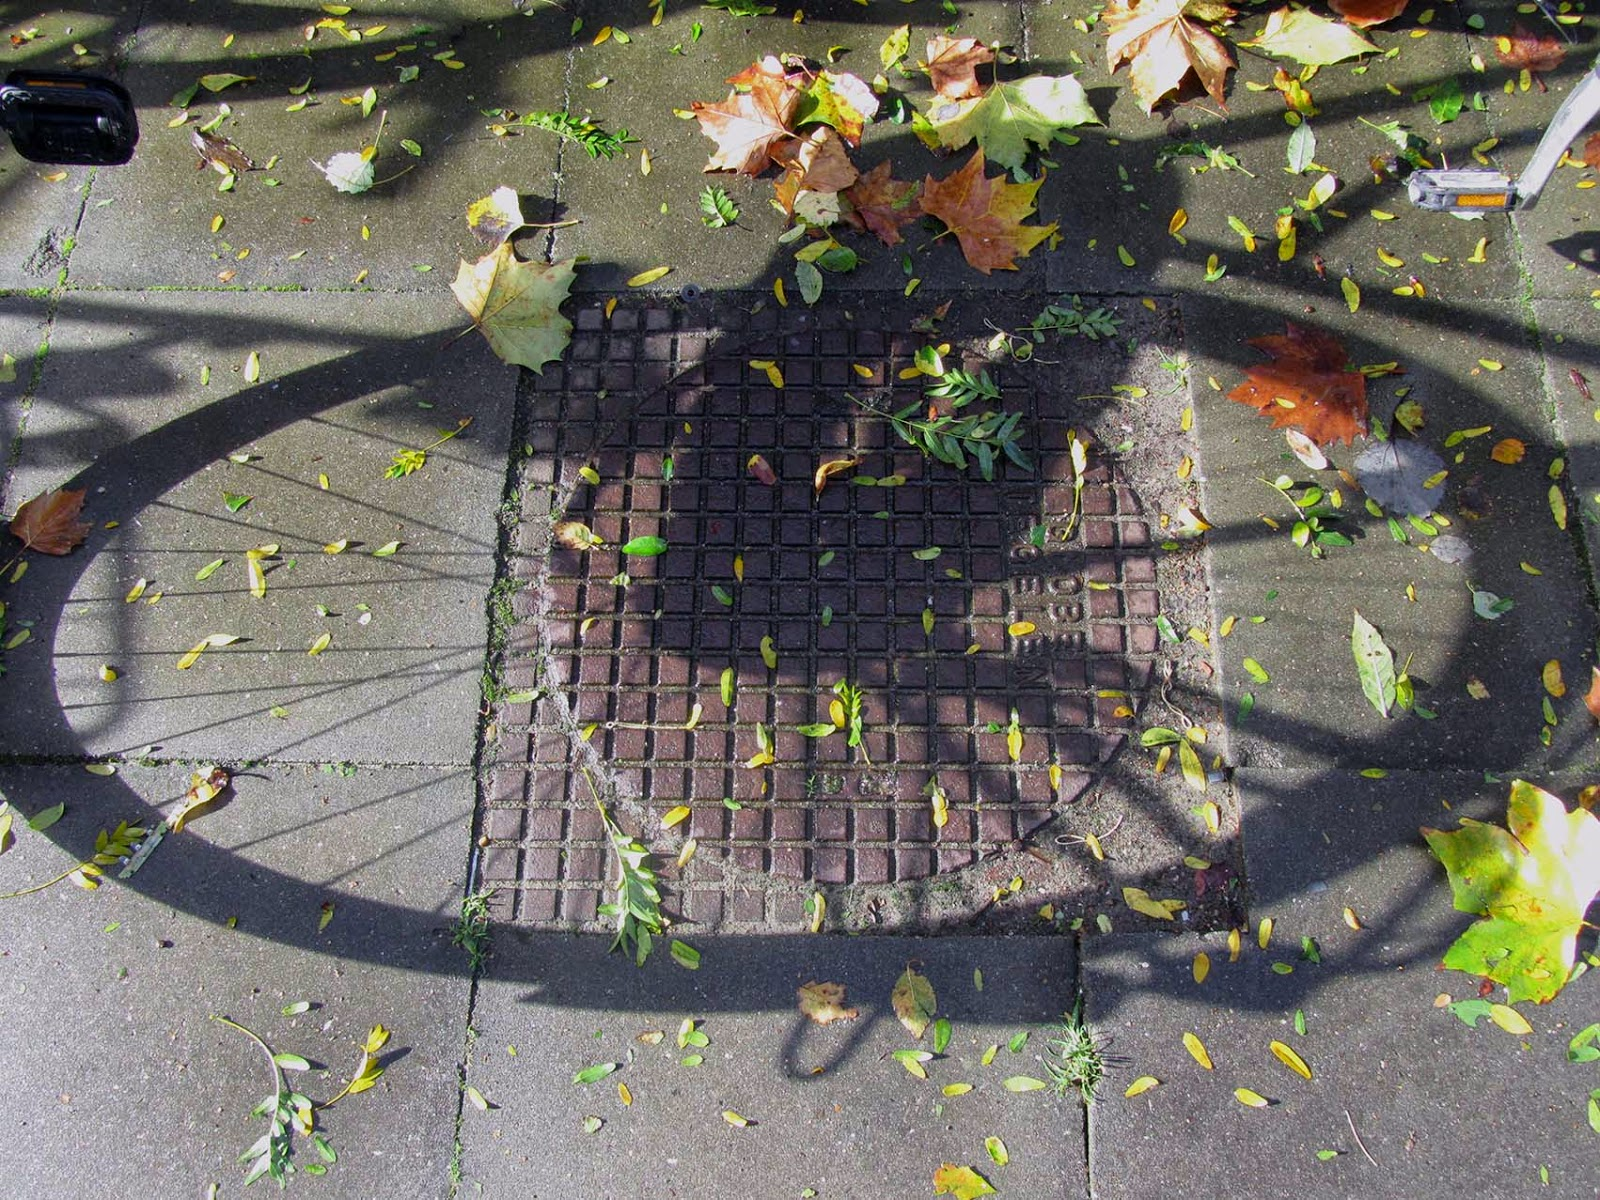 shadow of a bicycle wheel